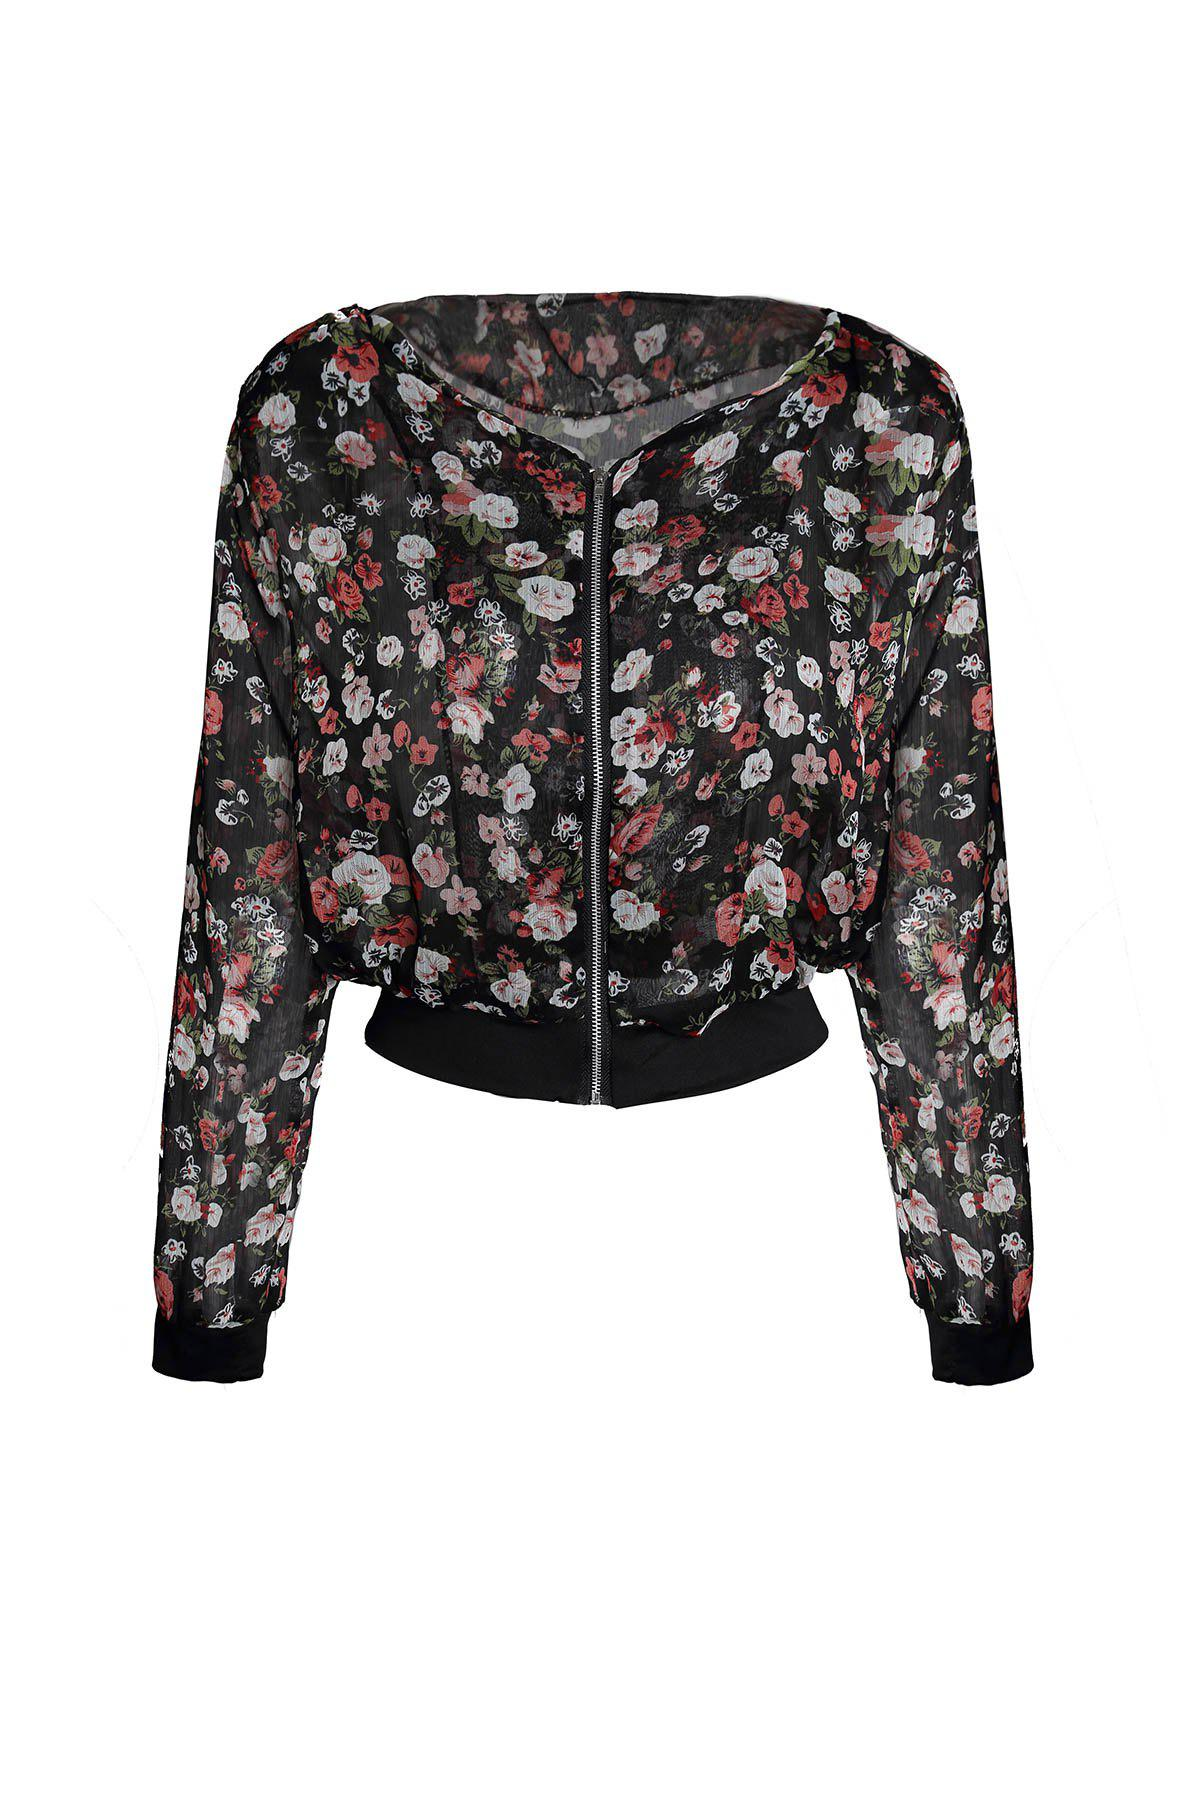 Women's Fashionable Floral Print Shoulder Pad Zipper Long Sleeves Chiffon Coat - BLACK ONE SIZE